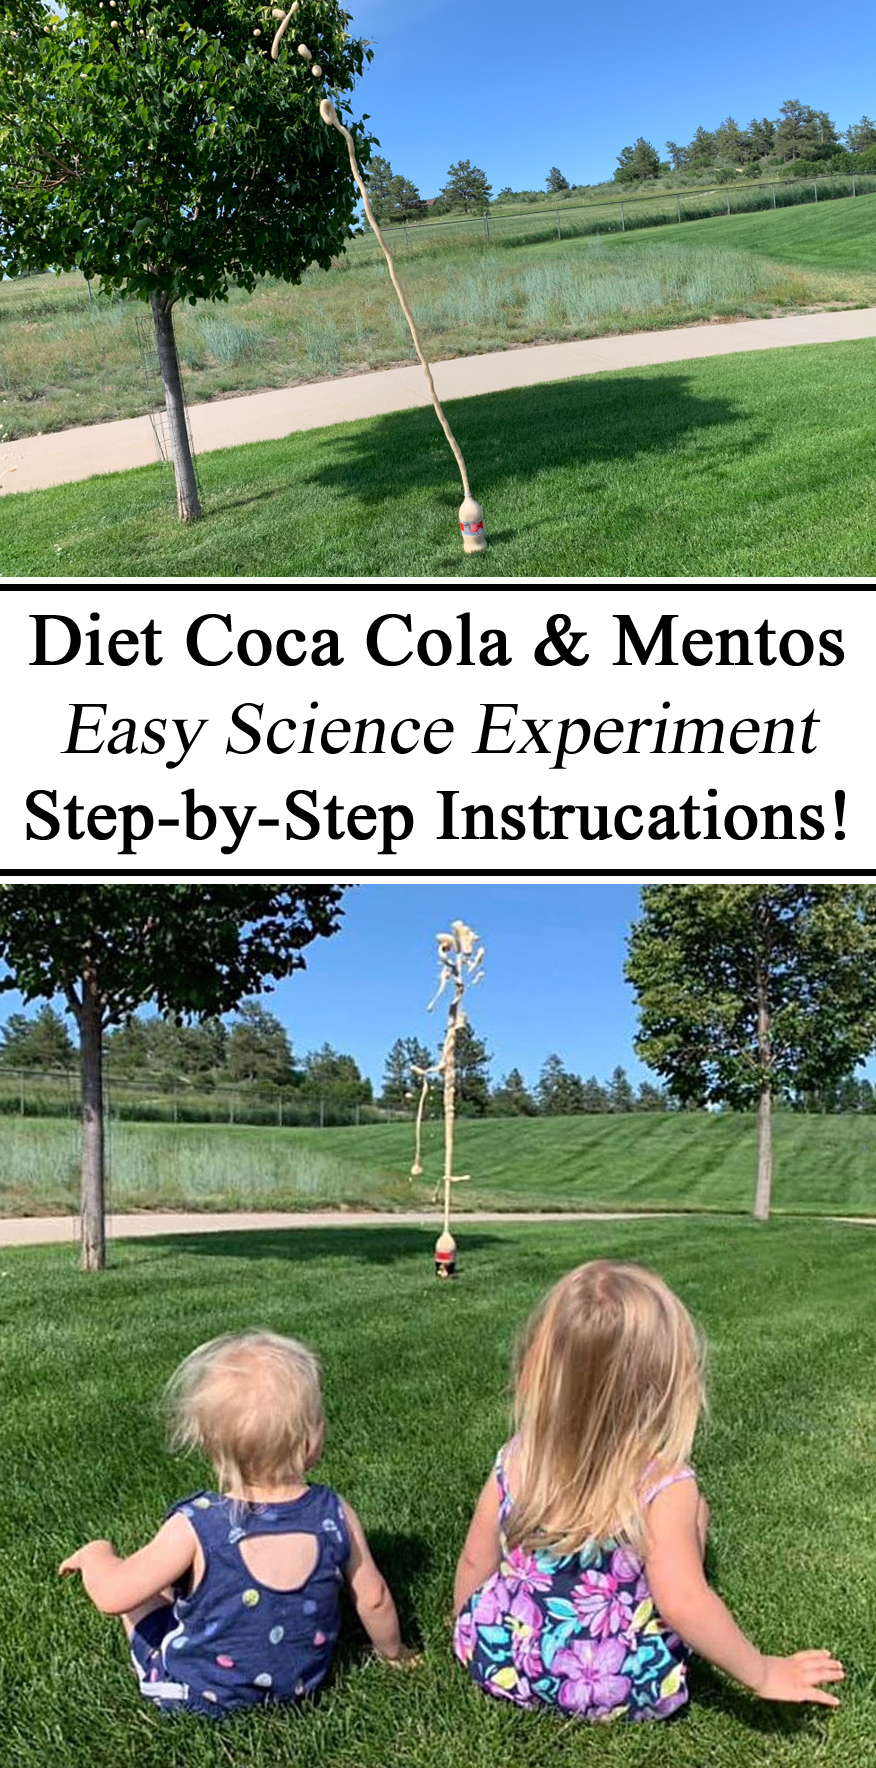 Iceland Unit Studies Study Country Coke Coca Cola Diet Mentos Mints Science Experiment for Kids Instructions Step by Step Homeschooling Ideas Inspiration Montessori STEM STEAM Learning Learn Geysers Eruptions Chemical Reactions Homeschooling Summer Activities Hands on Learning How things Work Unschooling